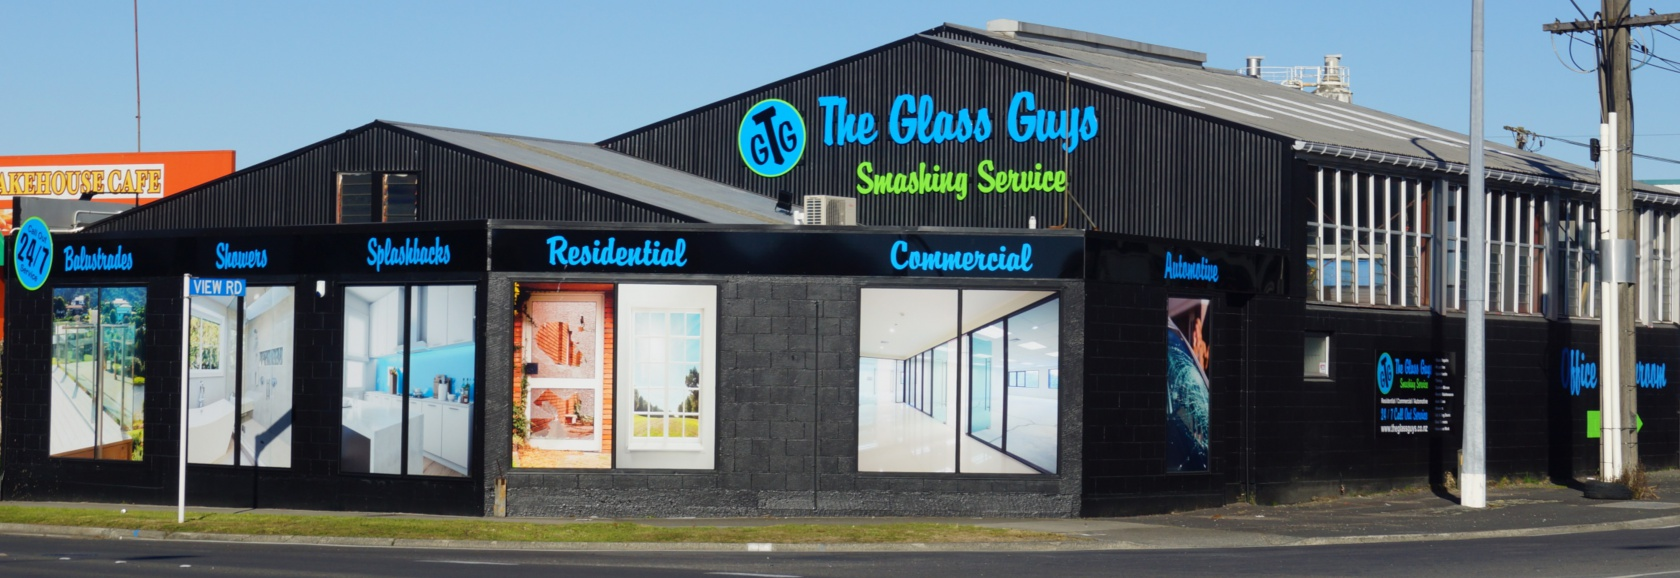 The Glass GuysEdited Building 1